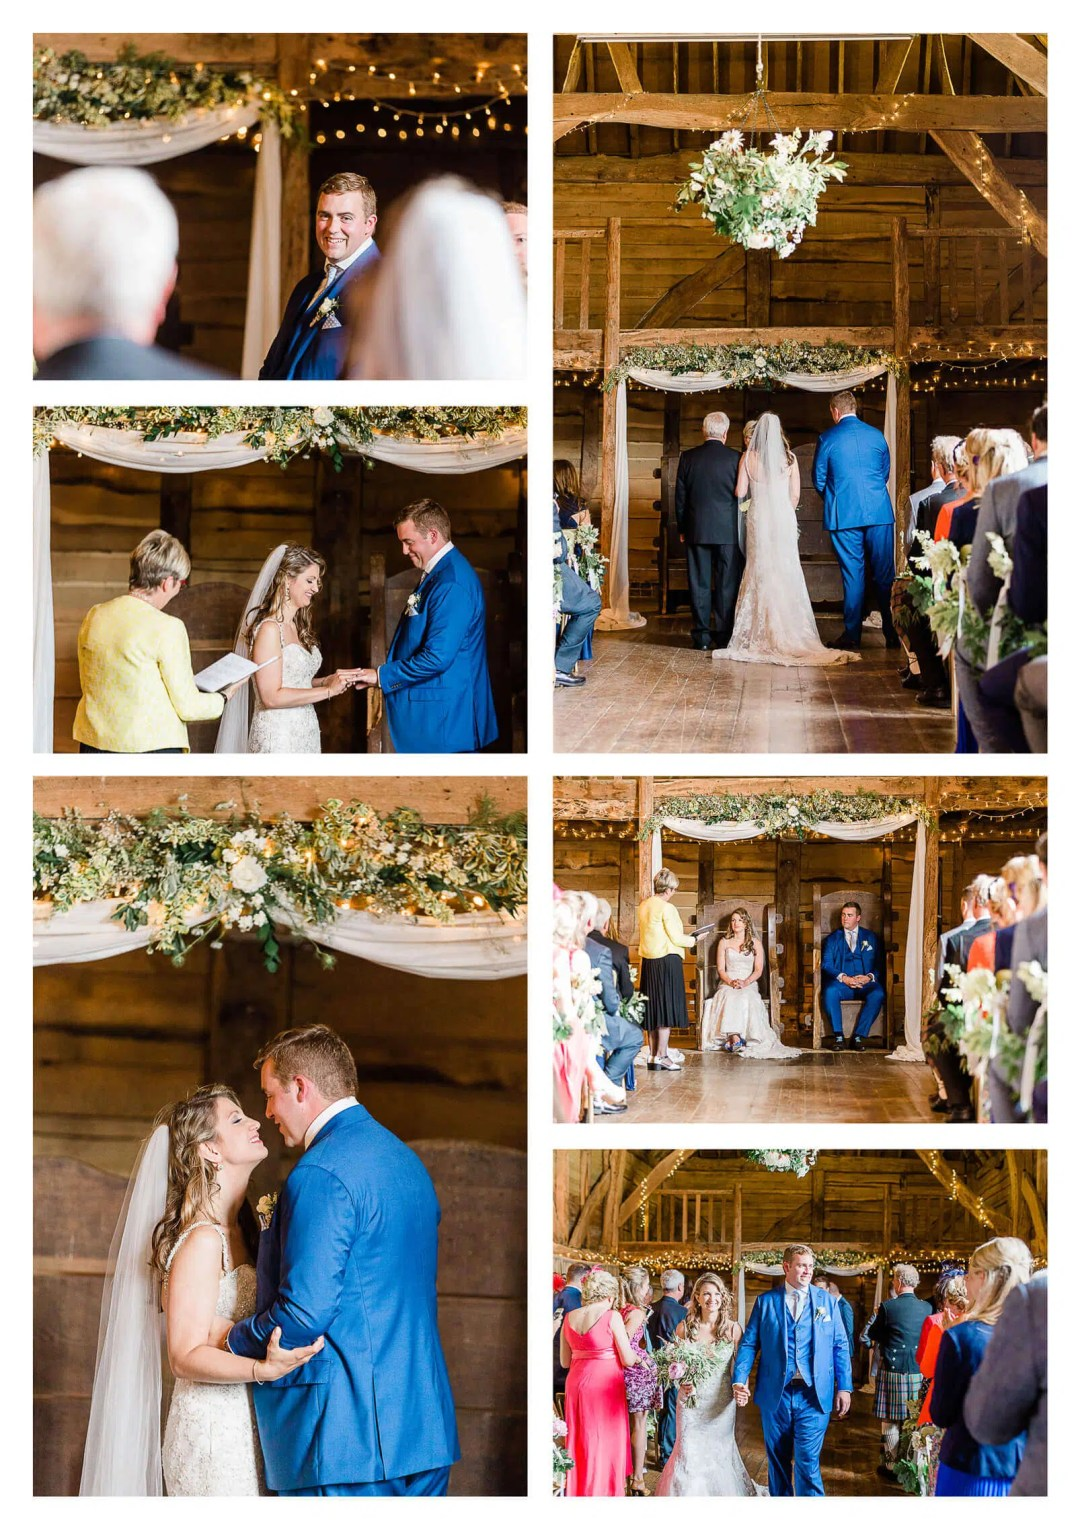 Michelham Priory barn wedding ceremony in Hailsham | East Sussex Photographer